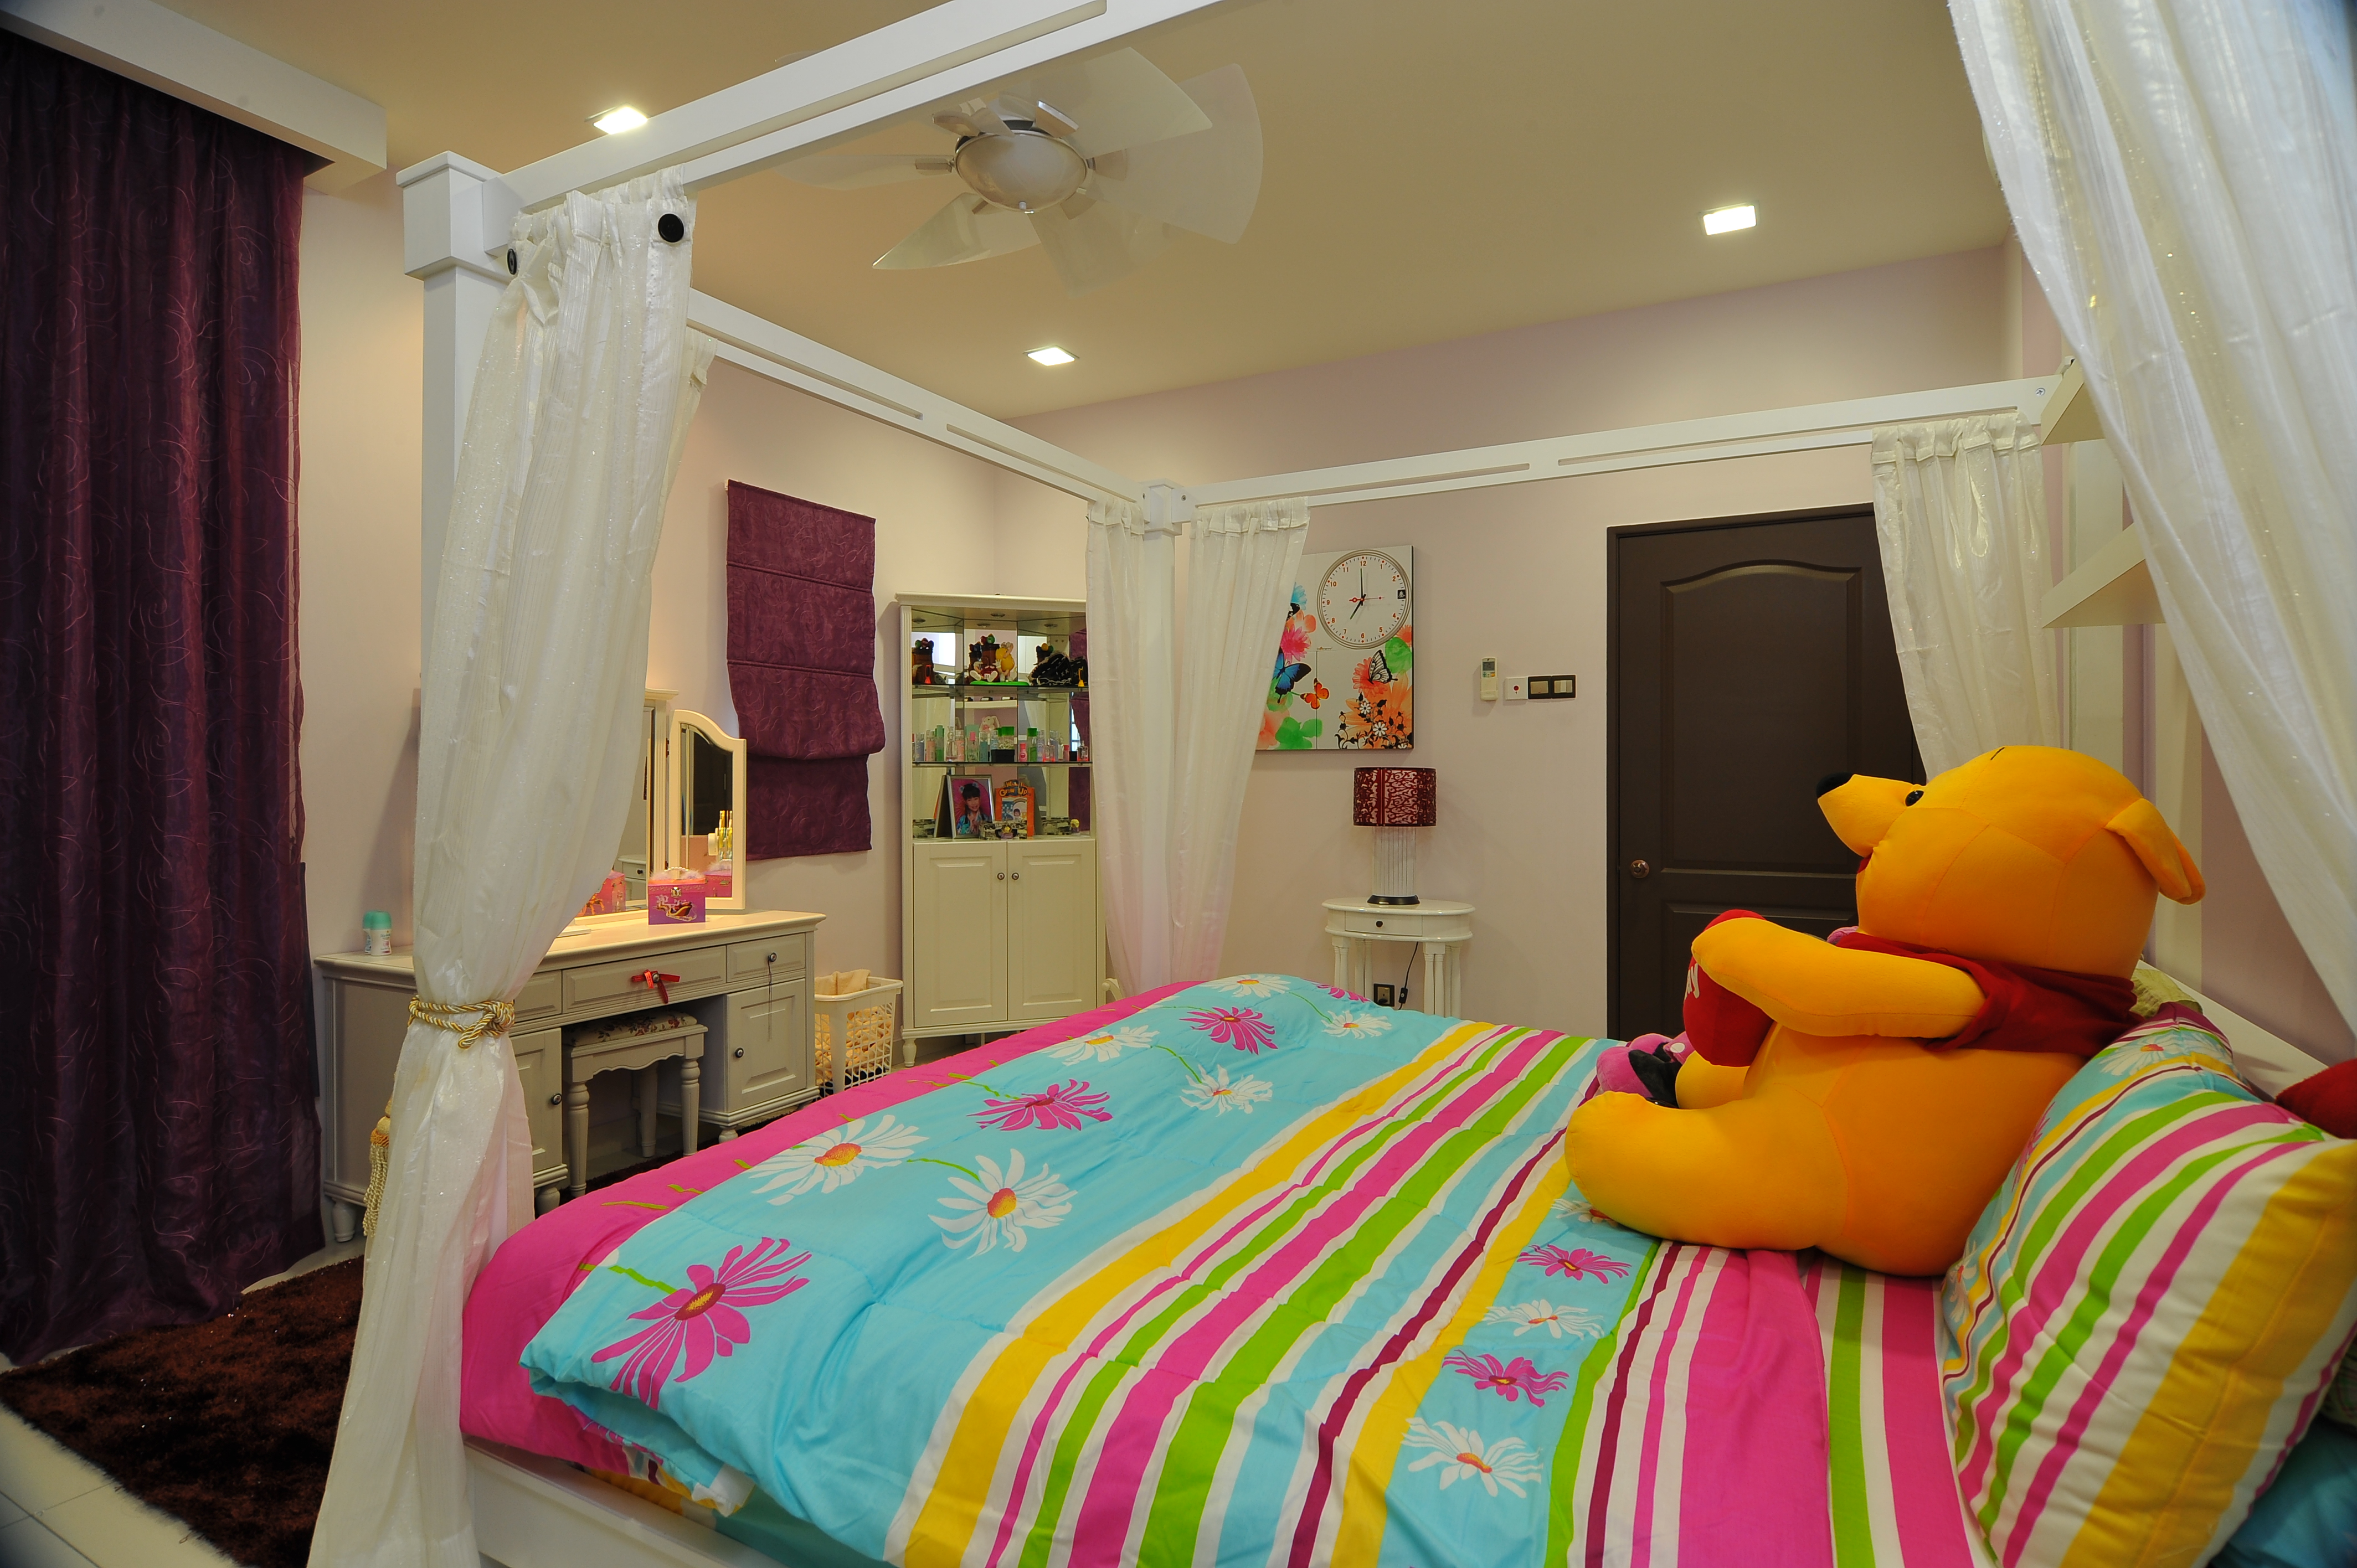 Kids room design mix fun with usability renof article for Room interior design sdn bhd